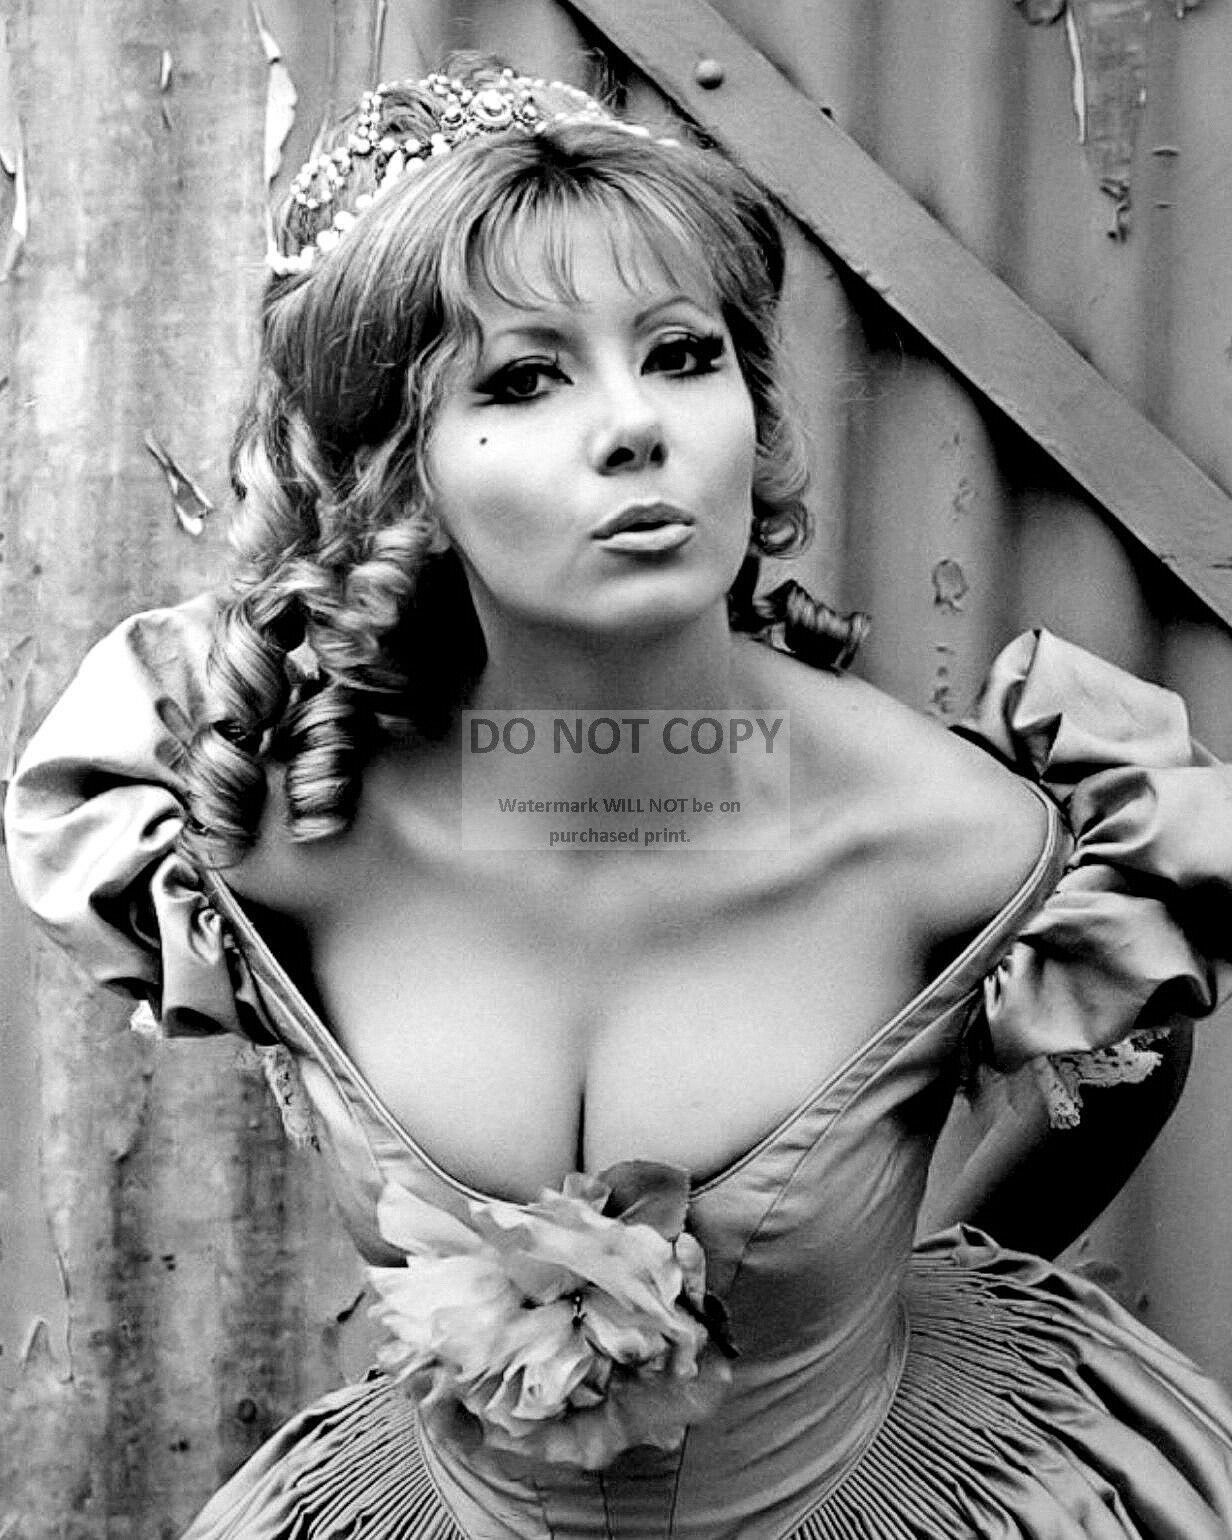 Ingrid Pitt nude (83 photo), Tits, Paparazzi, Selfie, braless 2015